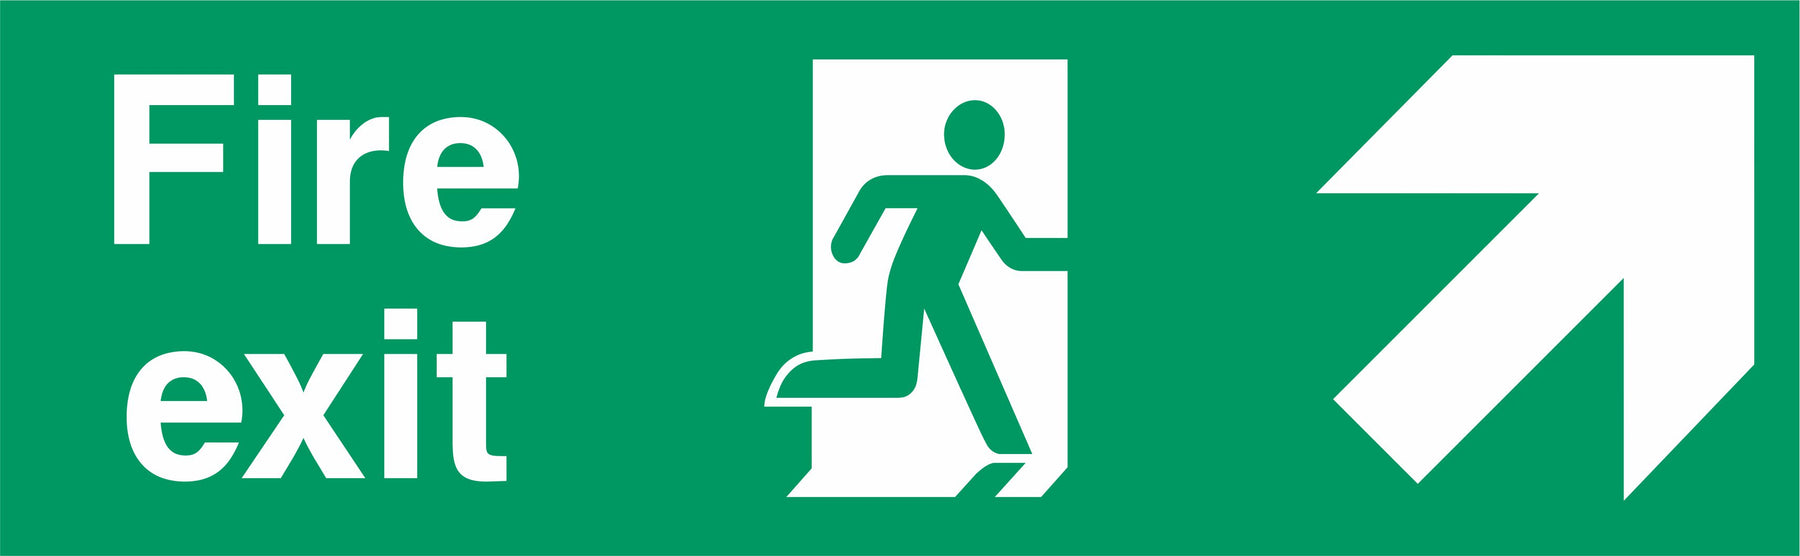 Fire Exit - Running Man Right - Up Right Arrow